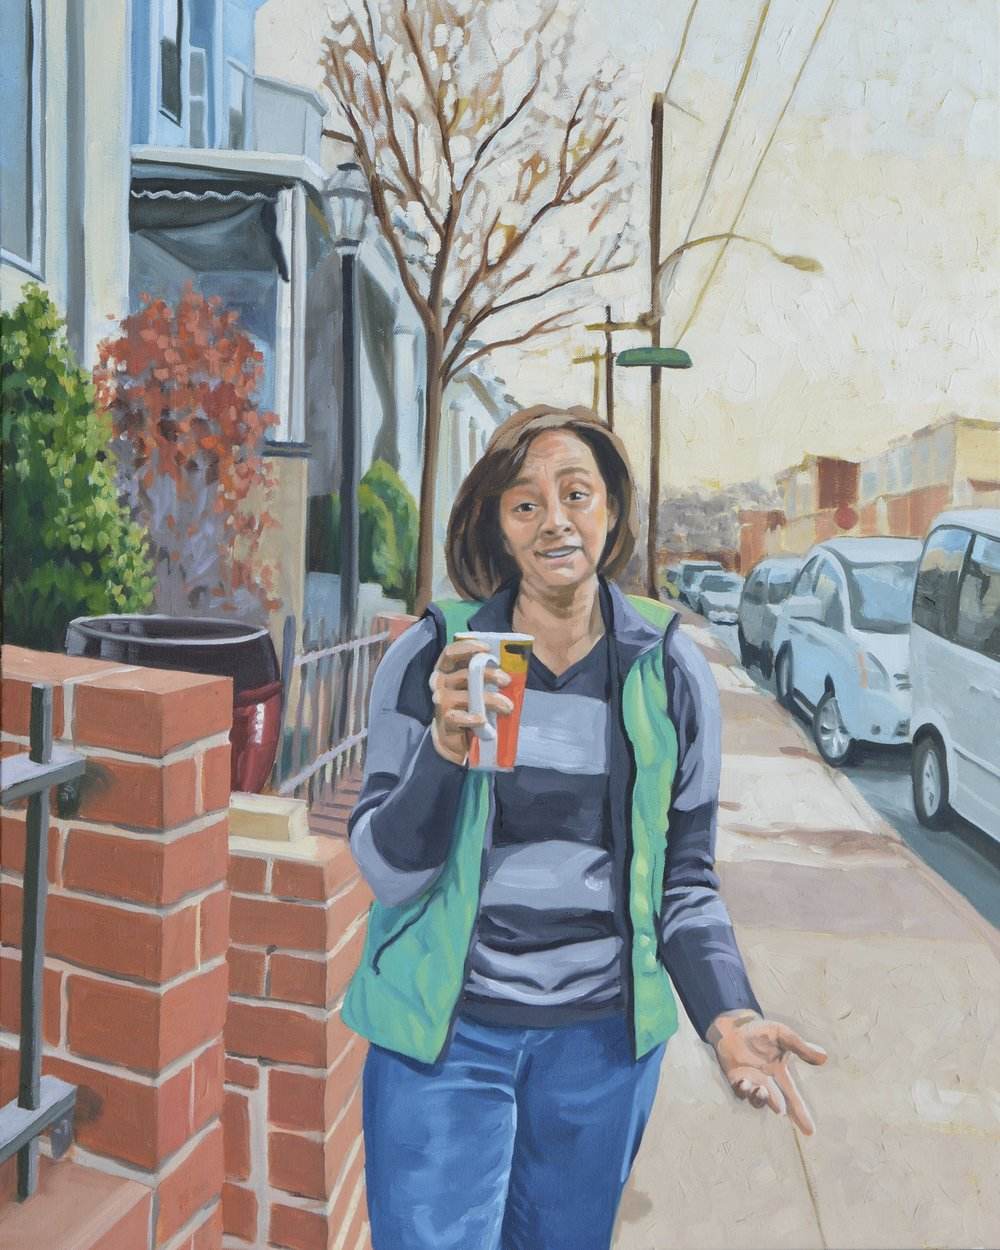 "Good Neighbors (Susan), 24x30"", oil on canvas, 2017"